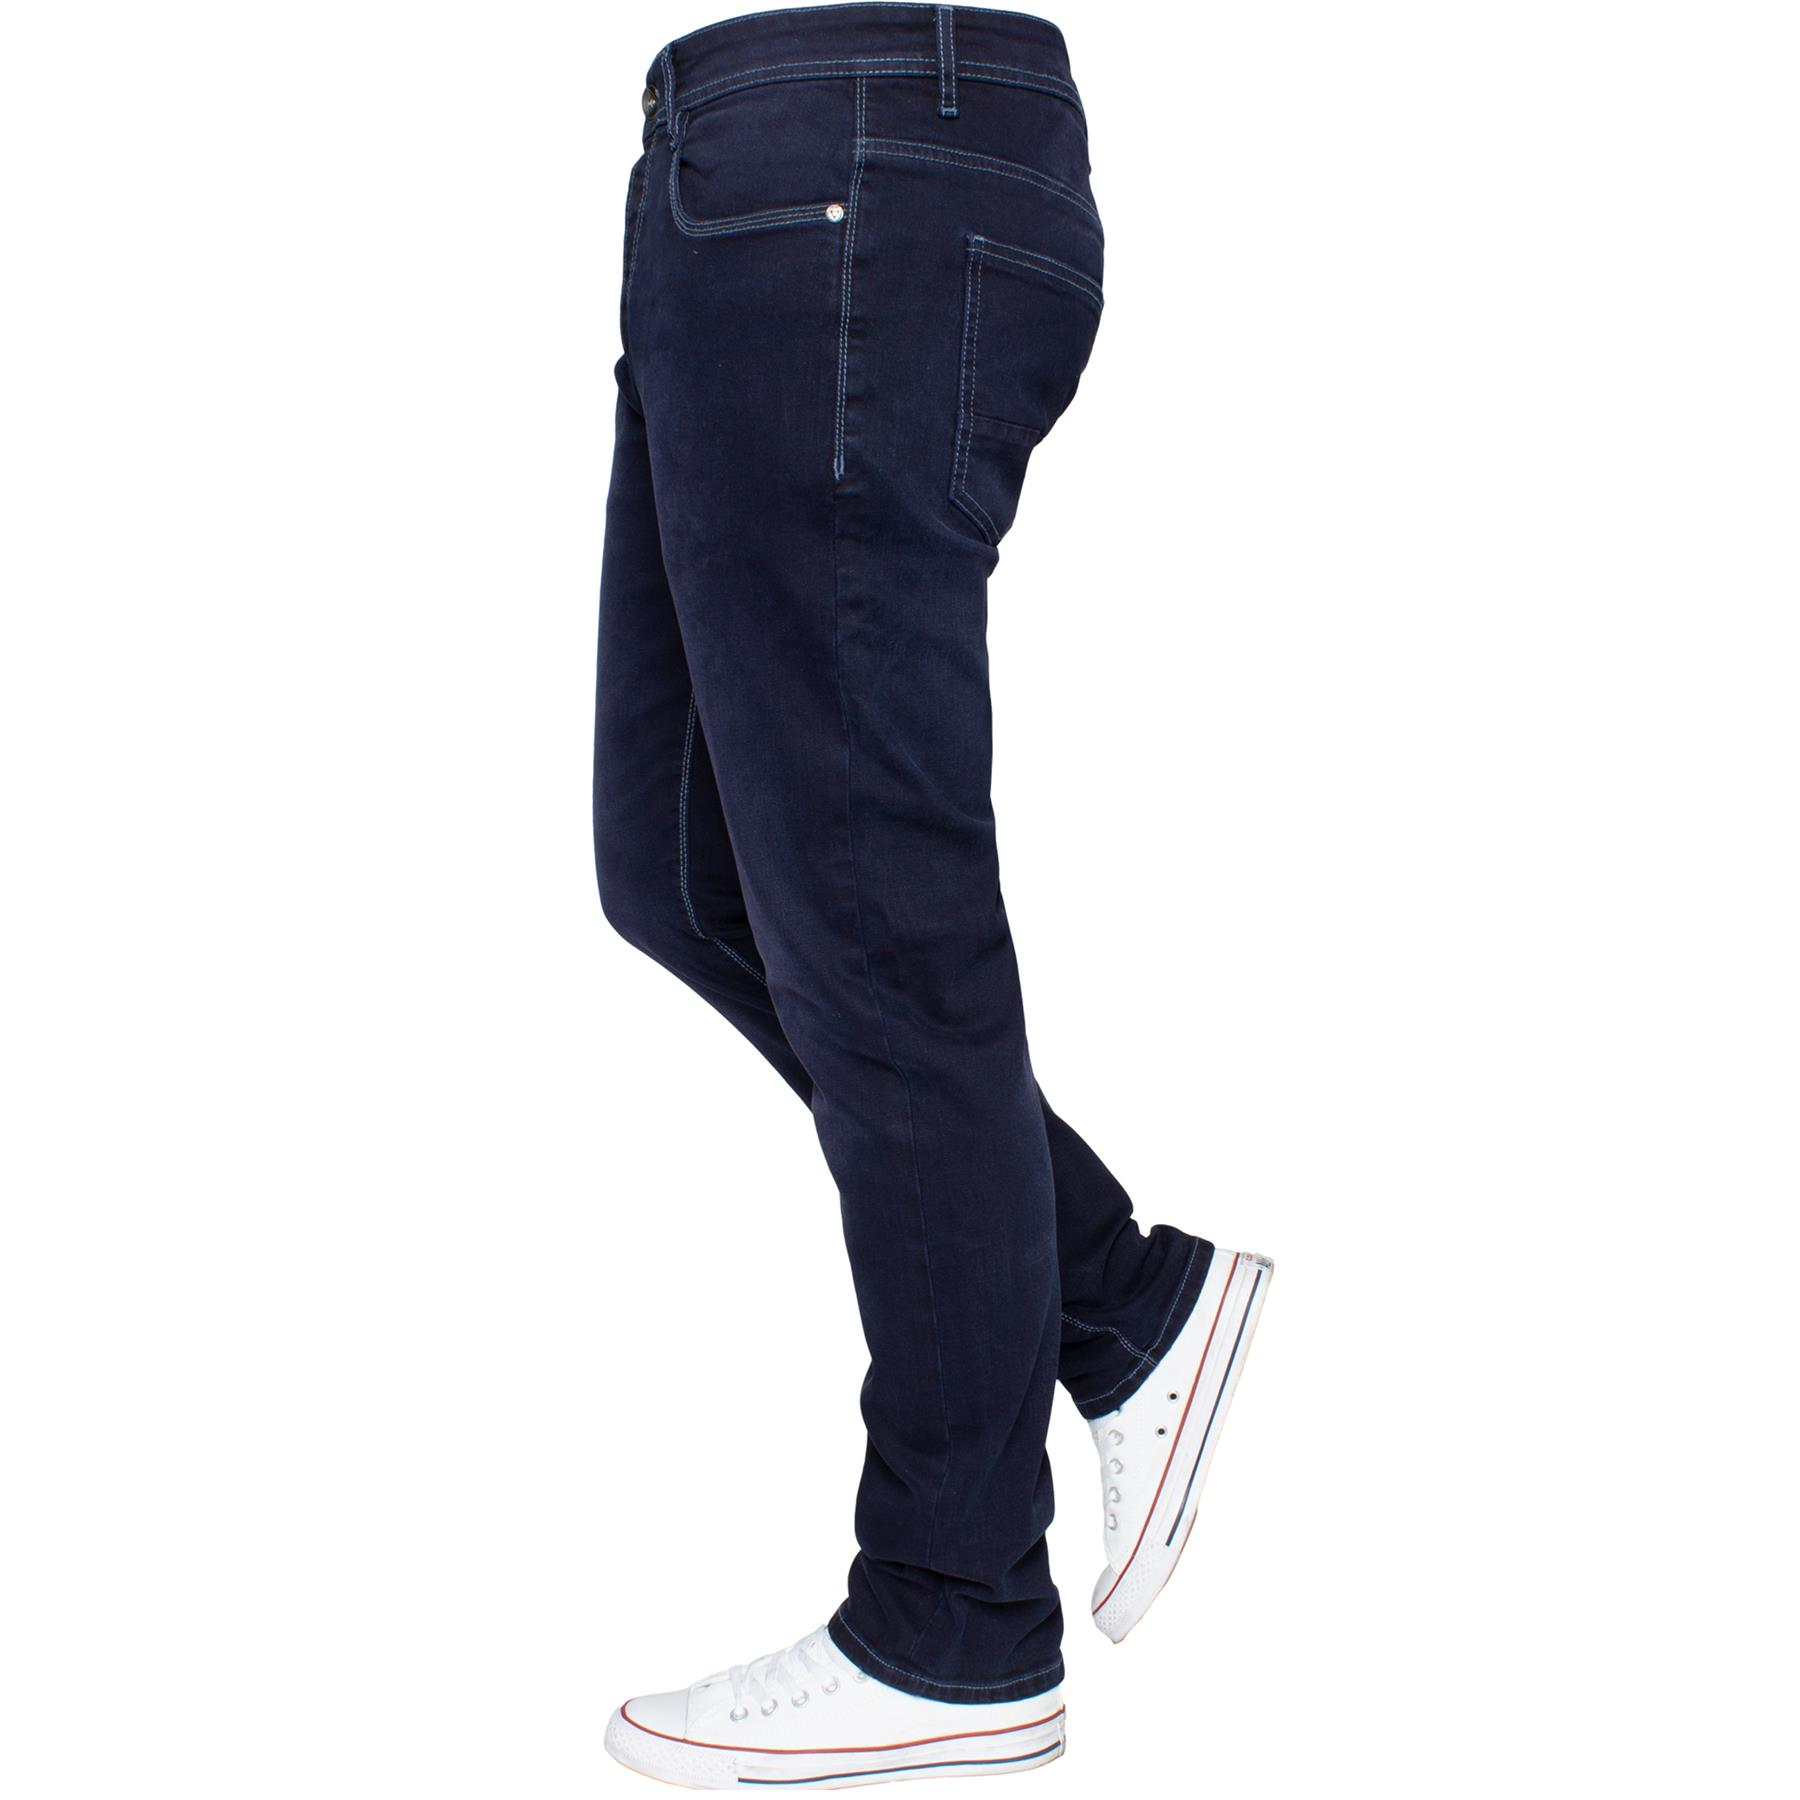 Eto-Designer-Mens-Tapered-Jeans-Slim-Fit-Stretch-Denim-Trouser-Pants-All-Waists thumbnail 22